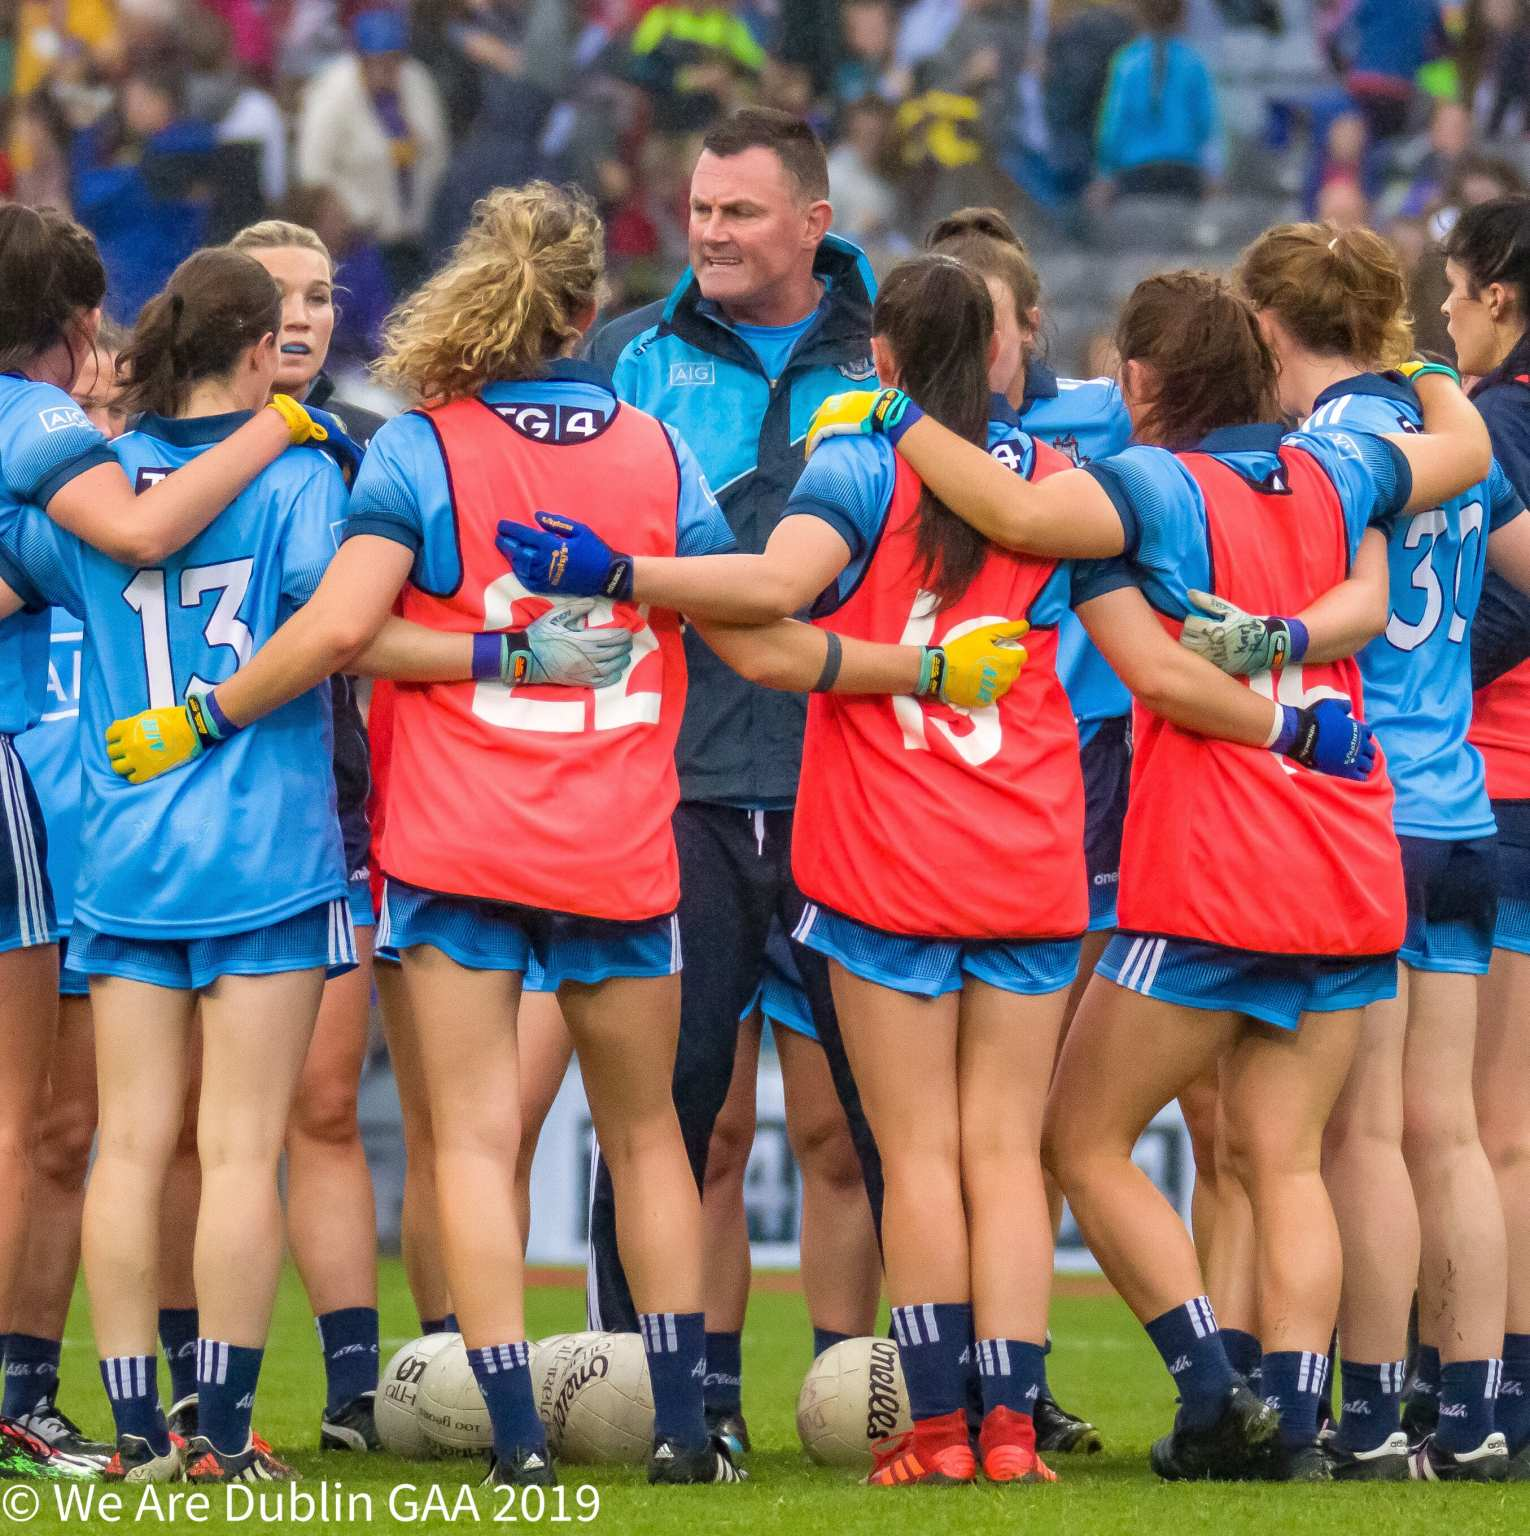 Dublin manager Mick Bohan speaking to his squad ahead of the All Ireland Final, Bohan expressed his side's experience was key to their success